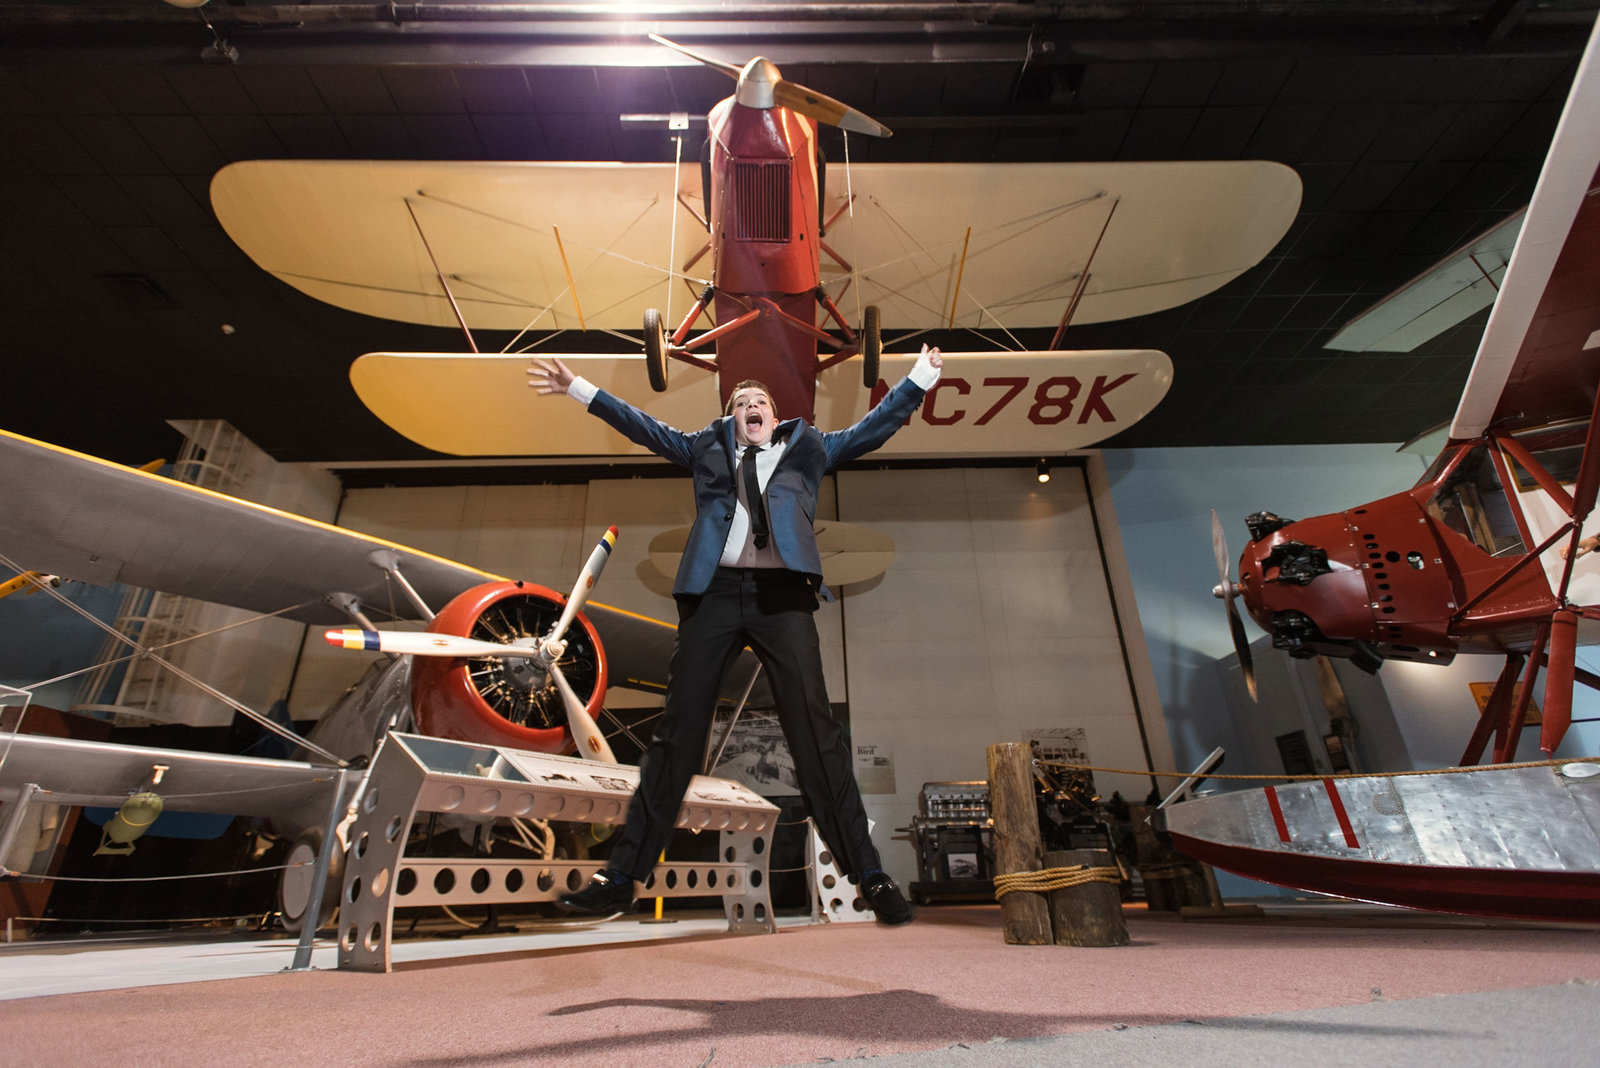 Bar mitzvah boy with planes at Cradle of Aviation